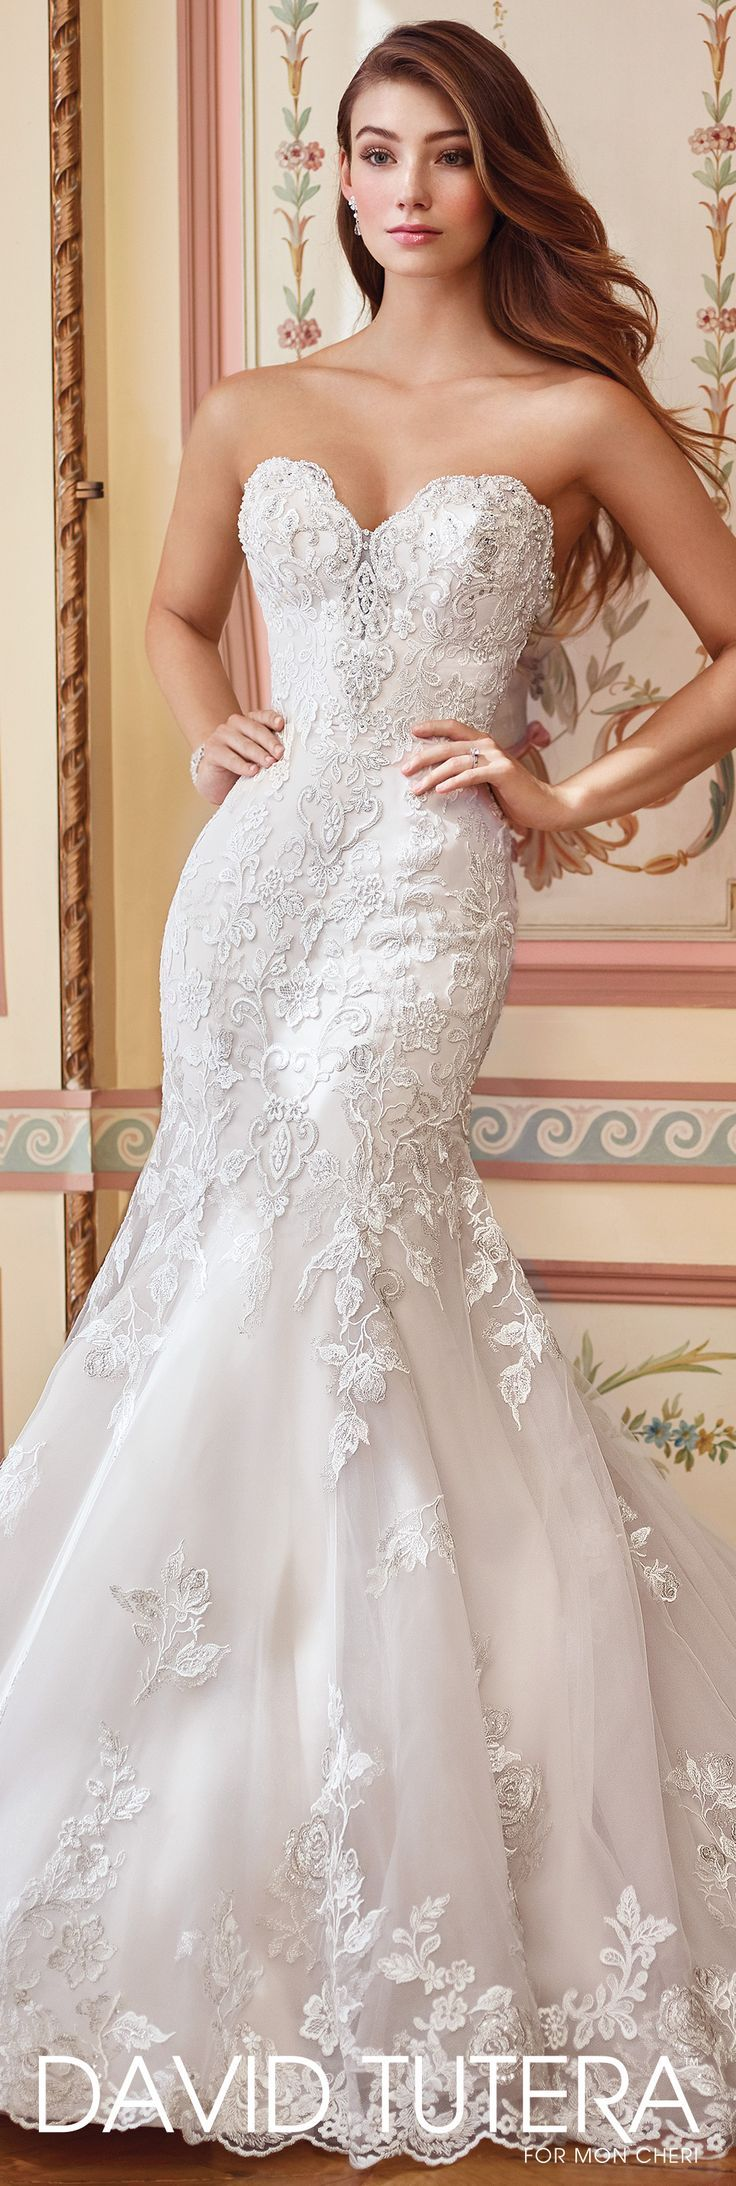 Wedding dresses mermaid style lace  David Tutera for Mon Cheri Spring  Collection  Style No